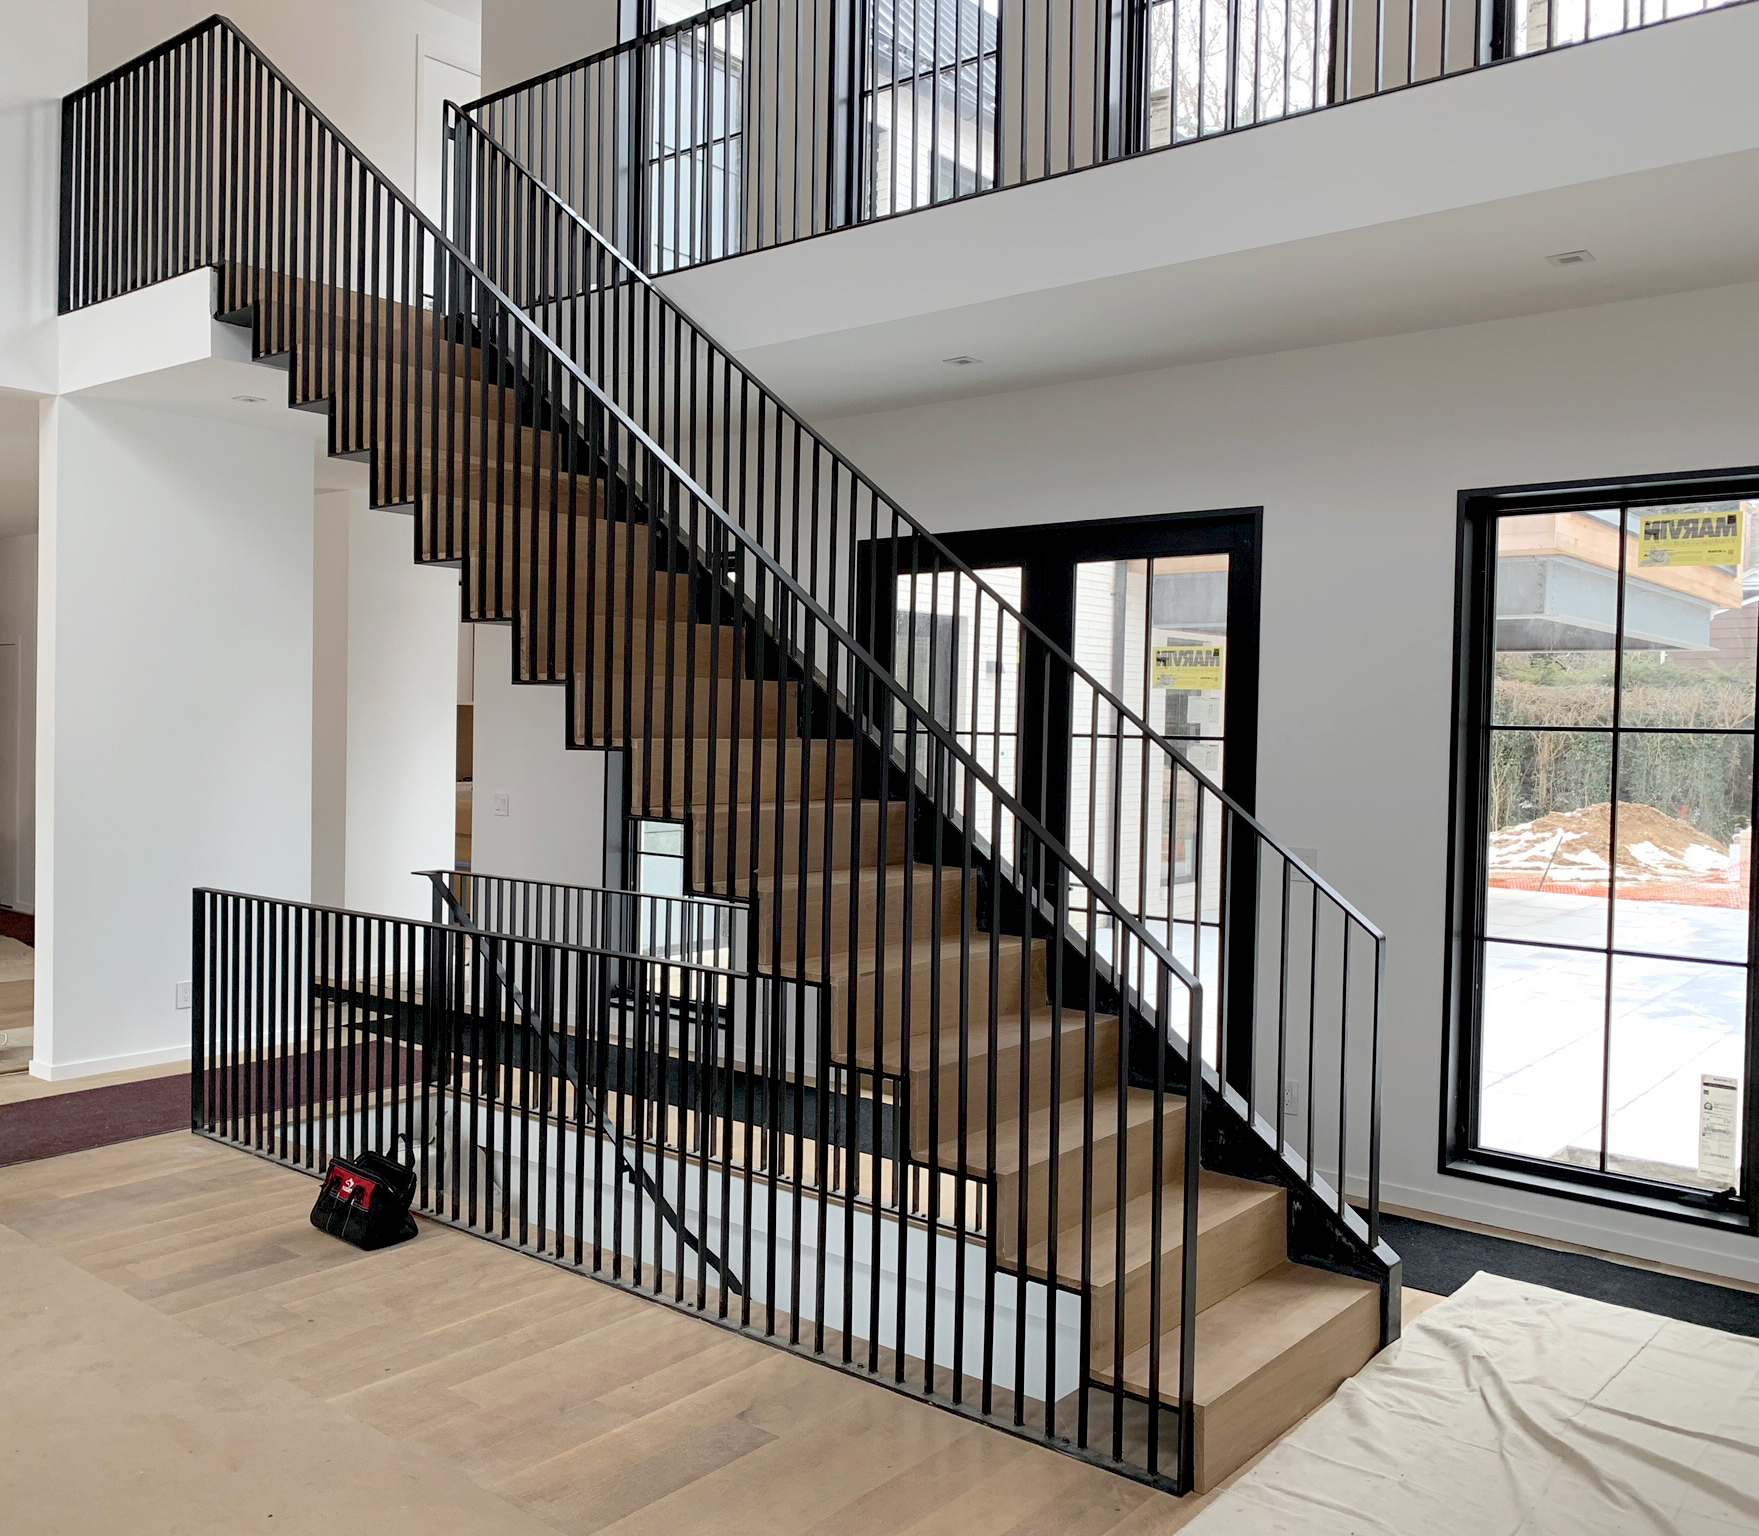 Long Island Modern Interior Design Custom Steel Staircase Black and White Home Design Under Construction